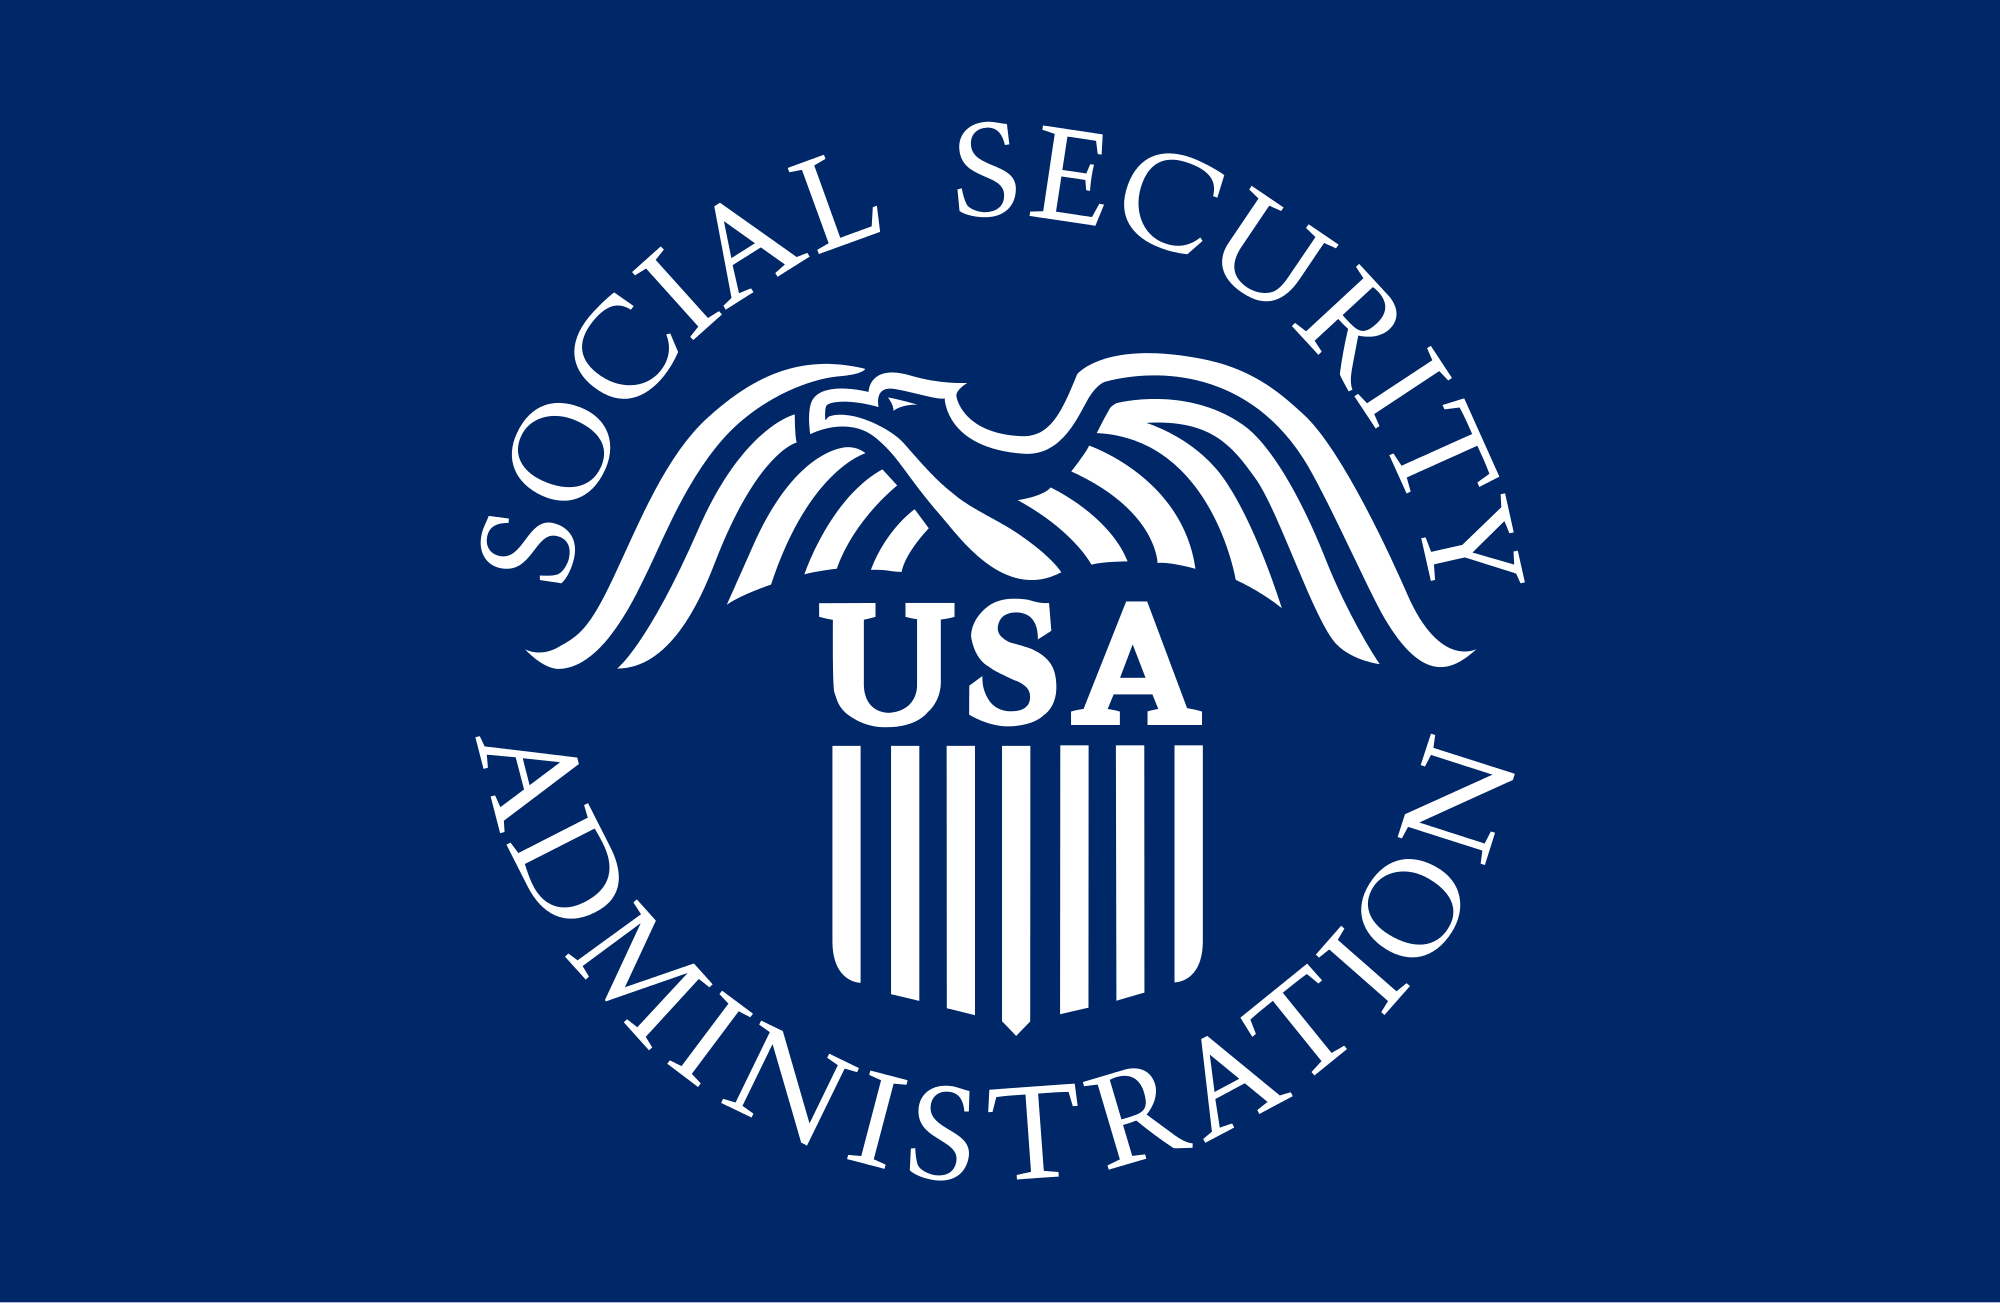 social administration Transfers: to department of health, education, and welfare (hew) by reorganization plan no 1 of 1953, effective april 11, 1953 to department of health and human services, formerly hew, by department of education organization act (93 stat 695), october 17, 1979 to independent agency status within.